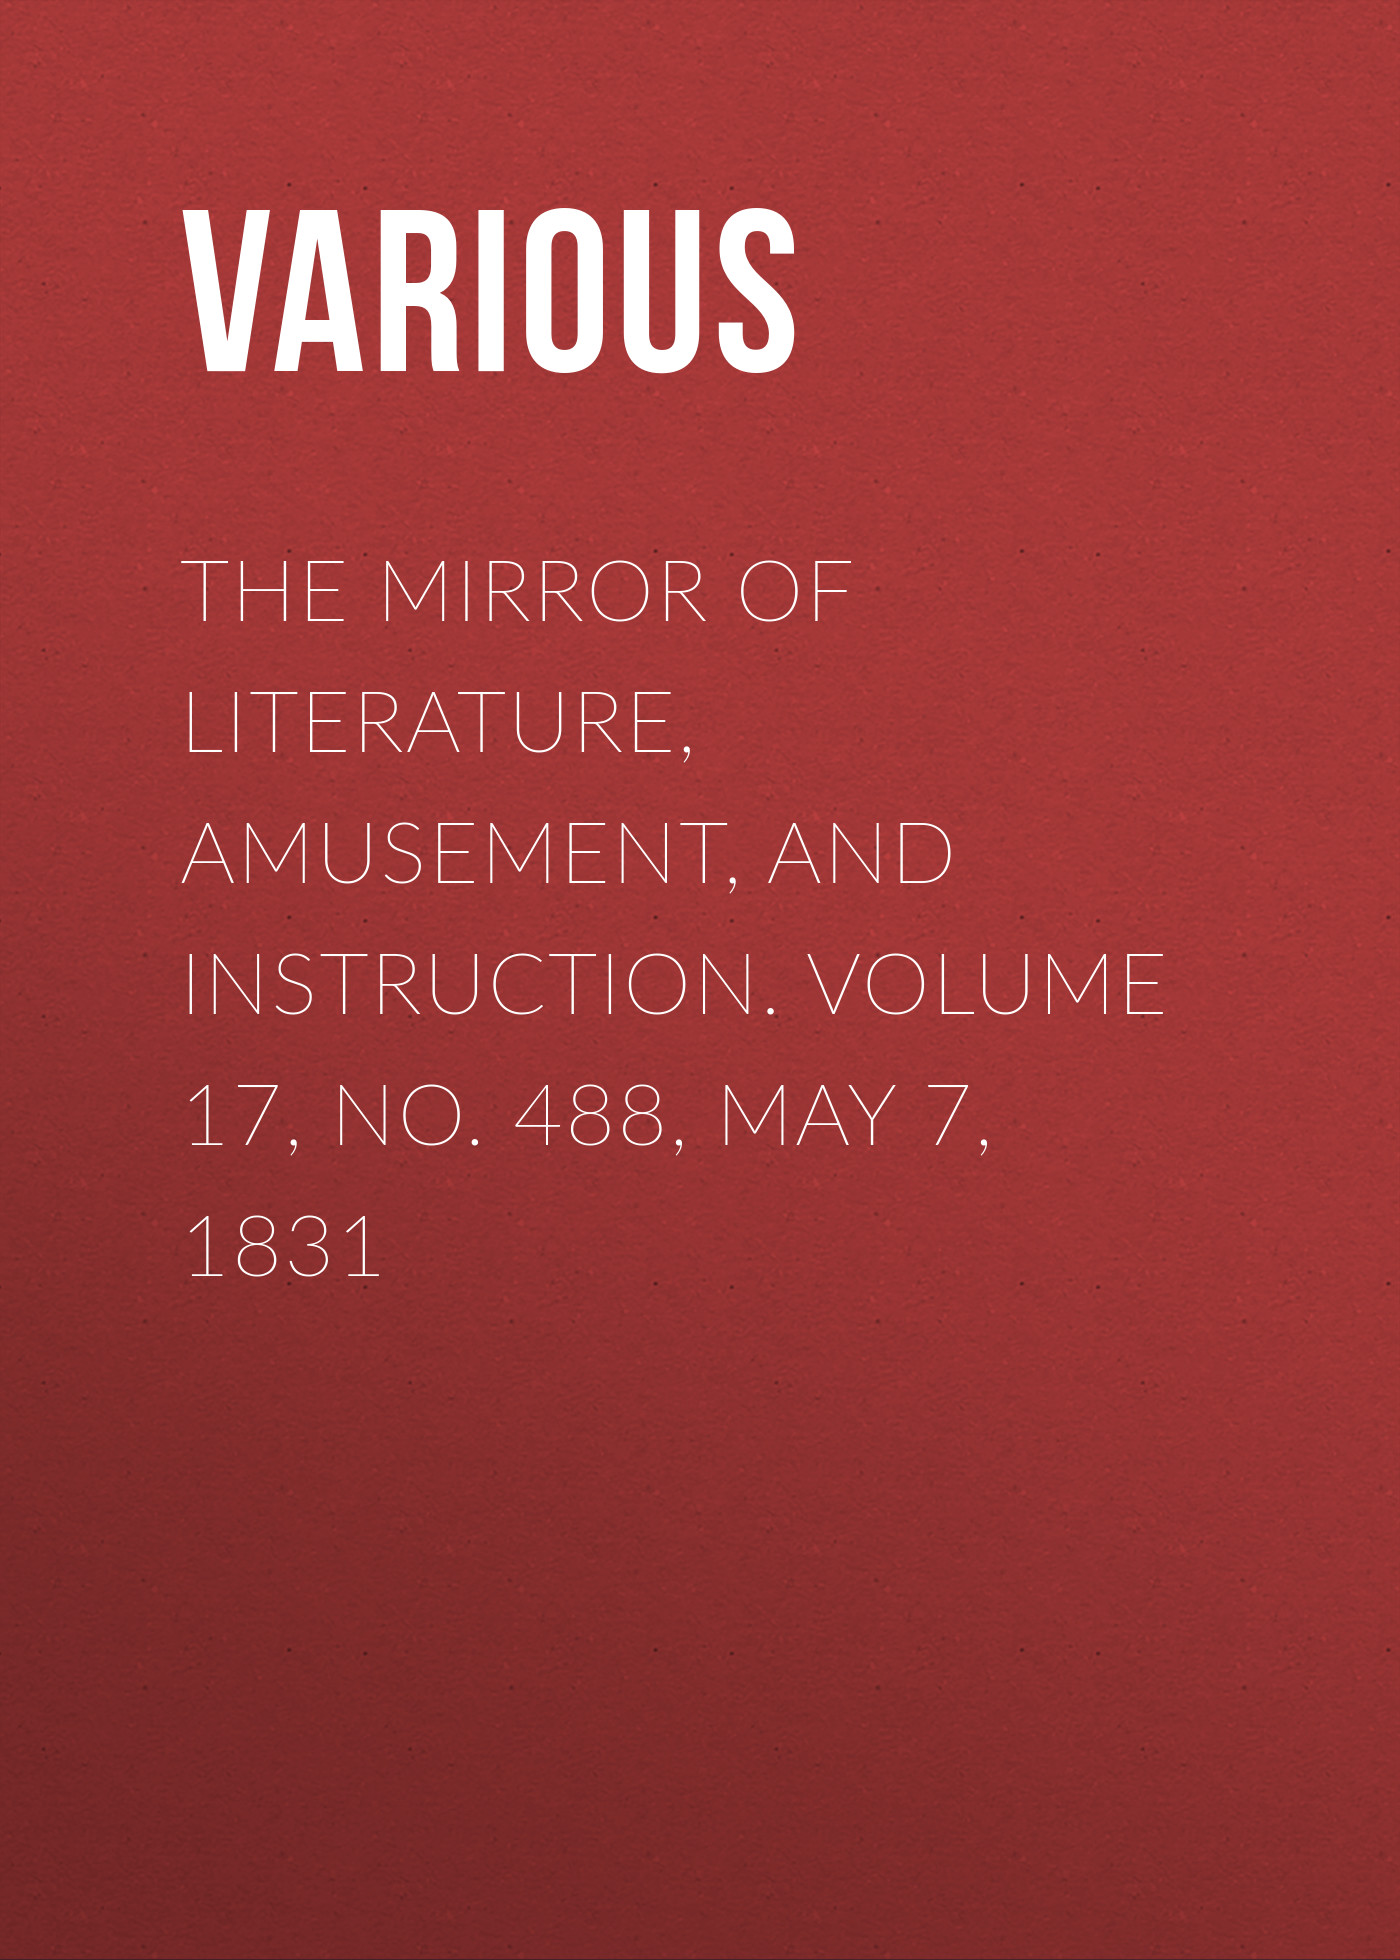 Various The Mirror of Literature, Amusement, and Instruction. Volume 17, No. 488, May 7, 1831 no 6 volume 7